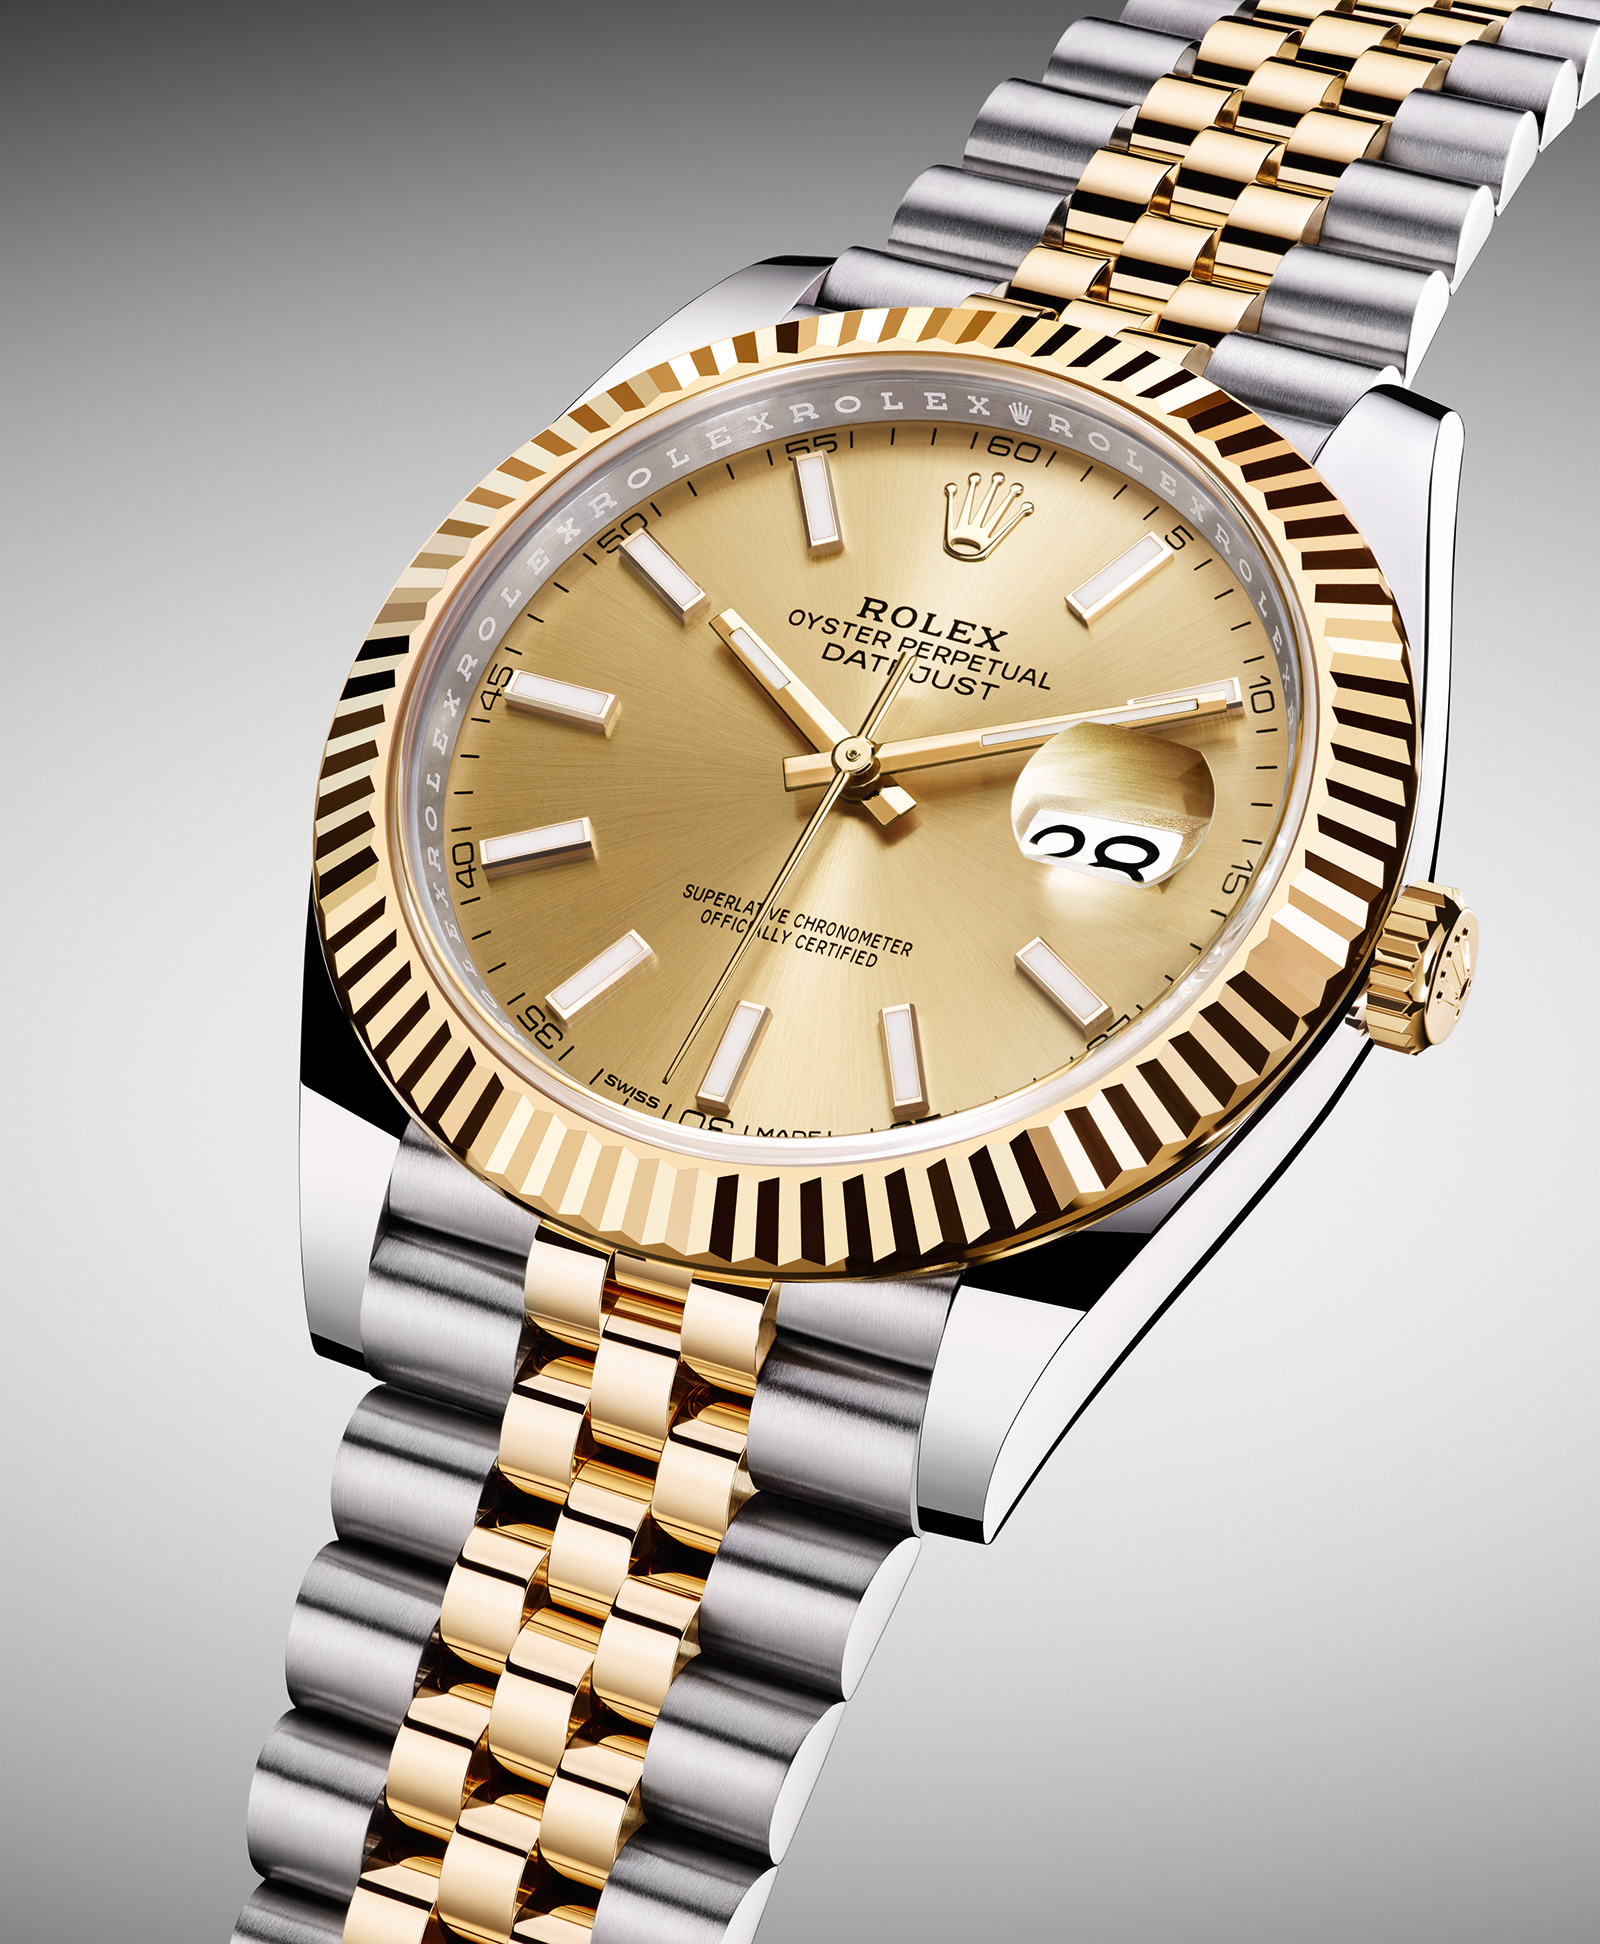 Introducing The Rolex Datejust 41 Powered By A High Tech